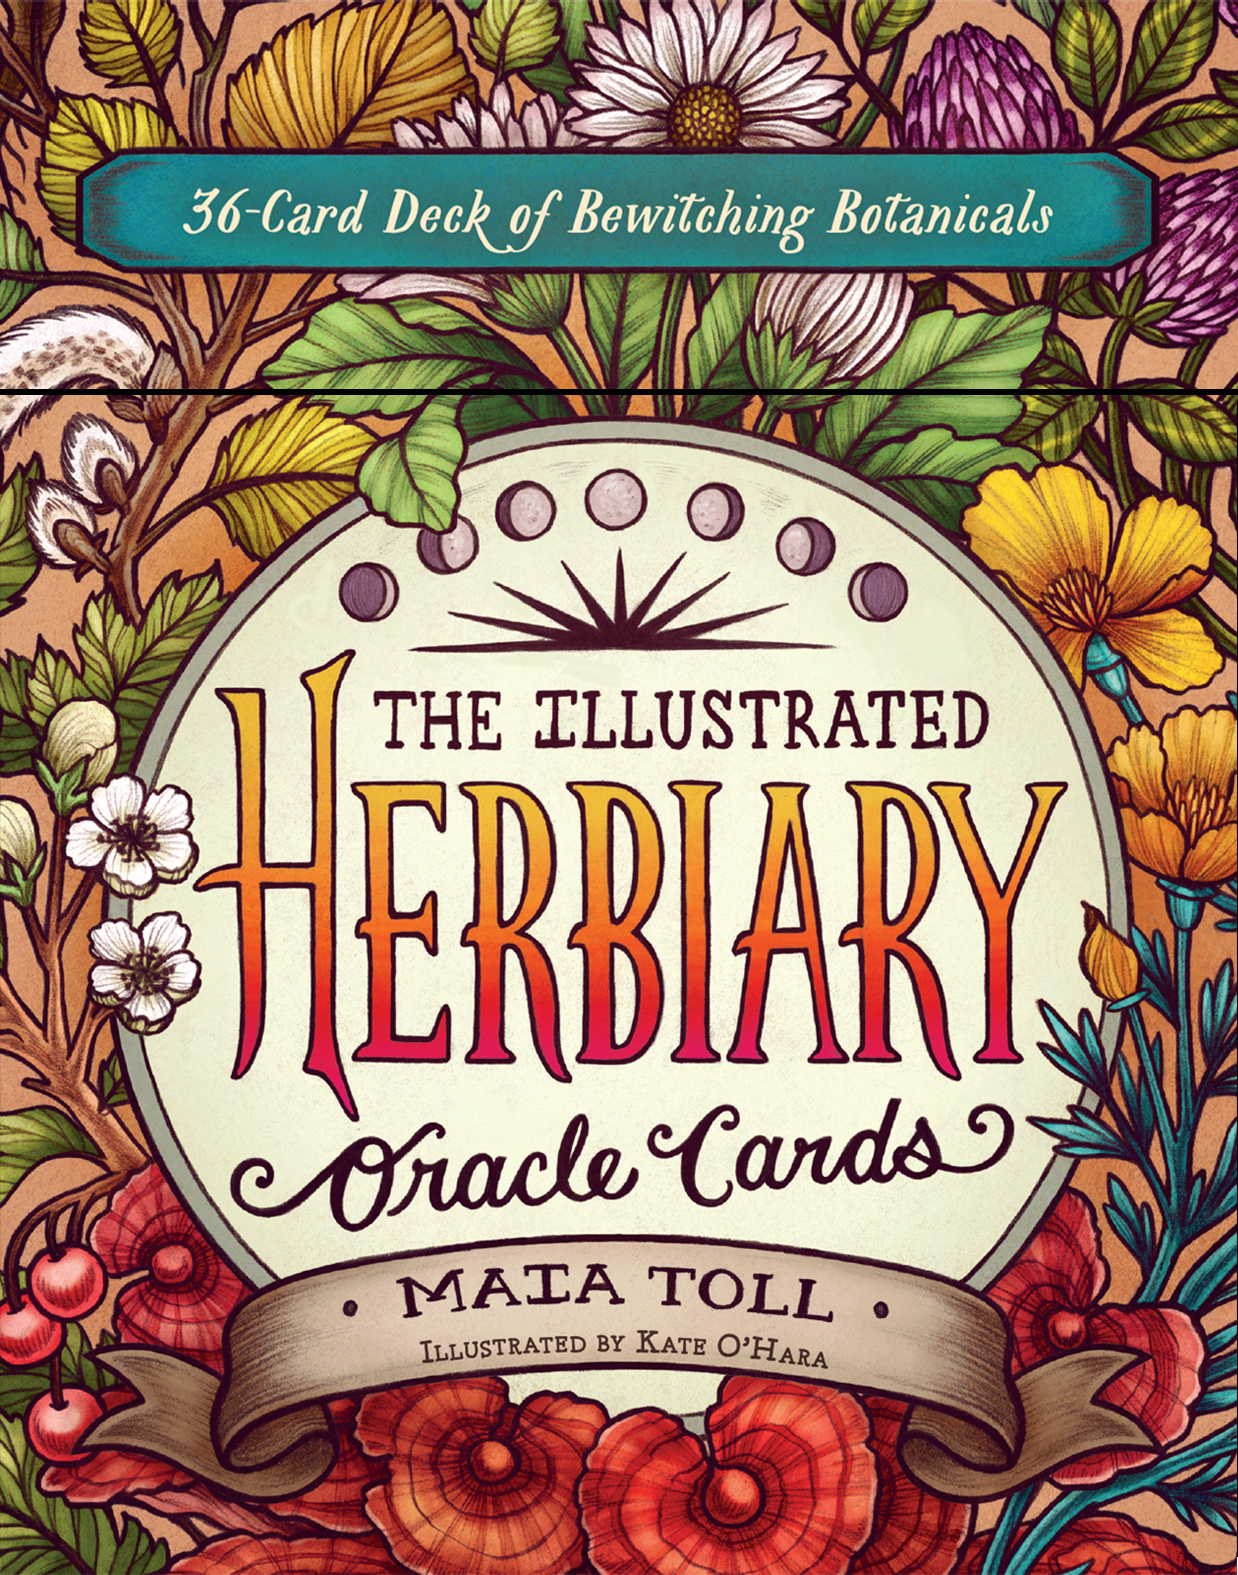 The Illustrated Herbiary Oracle Cards 36-Card Deck of Bewitching Botanicals - Maia Toll